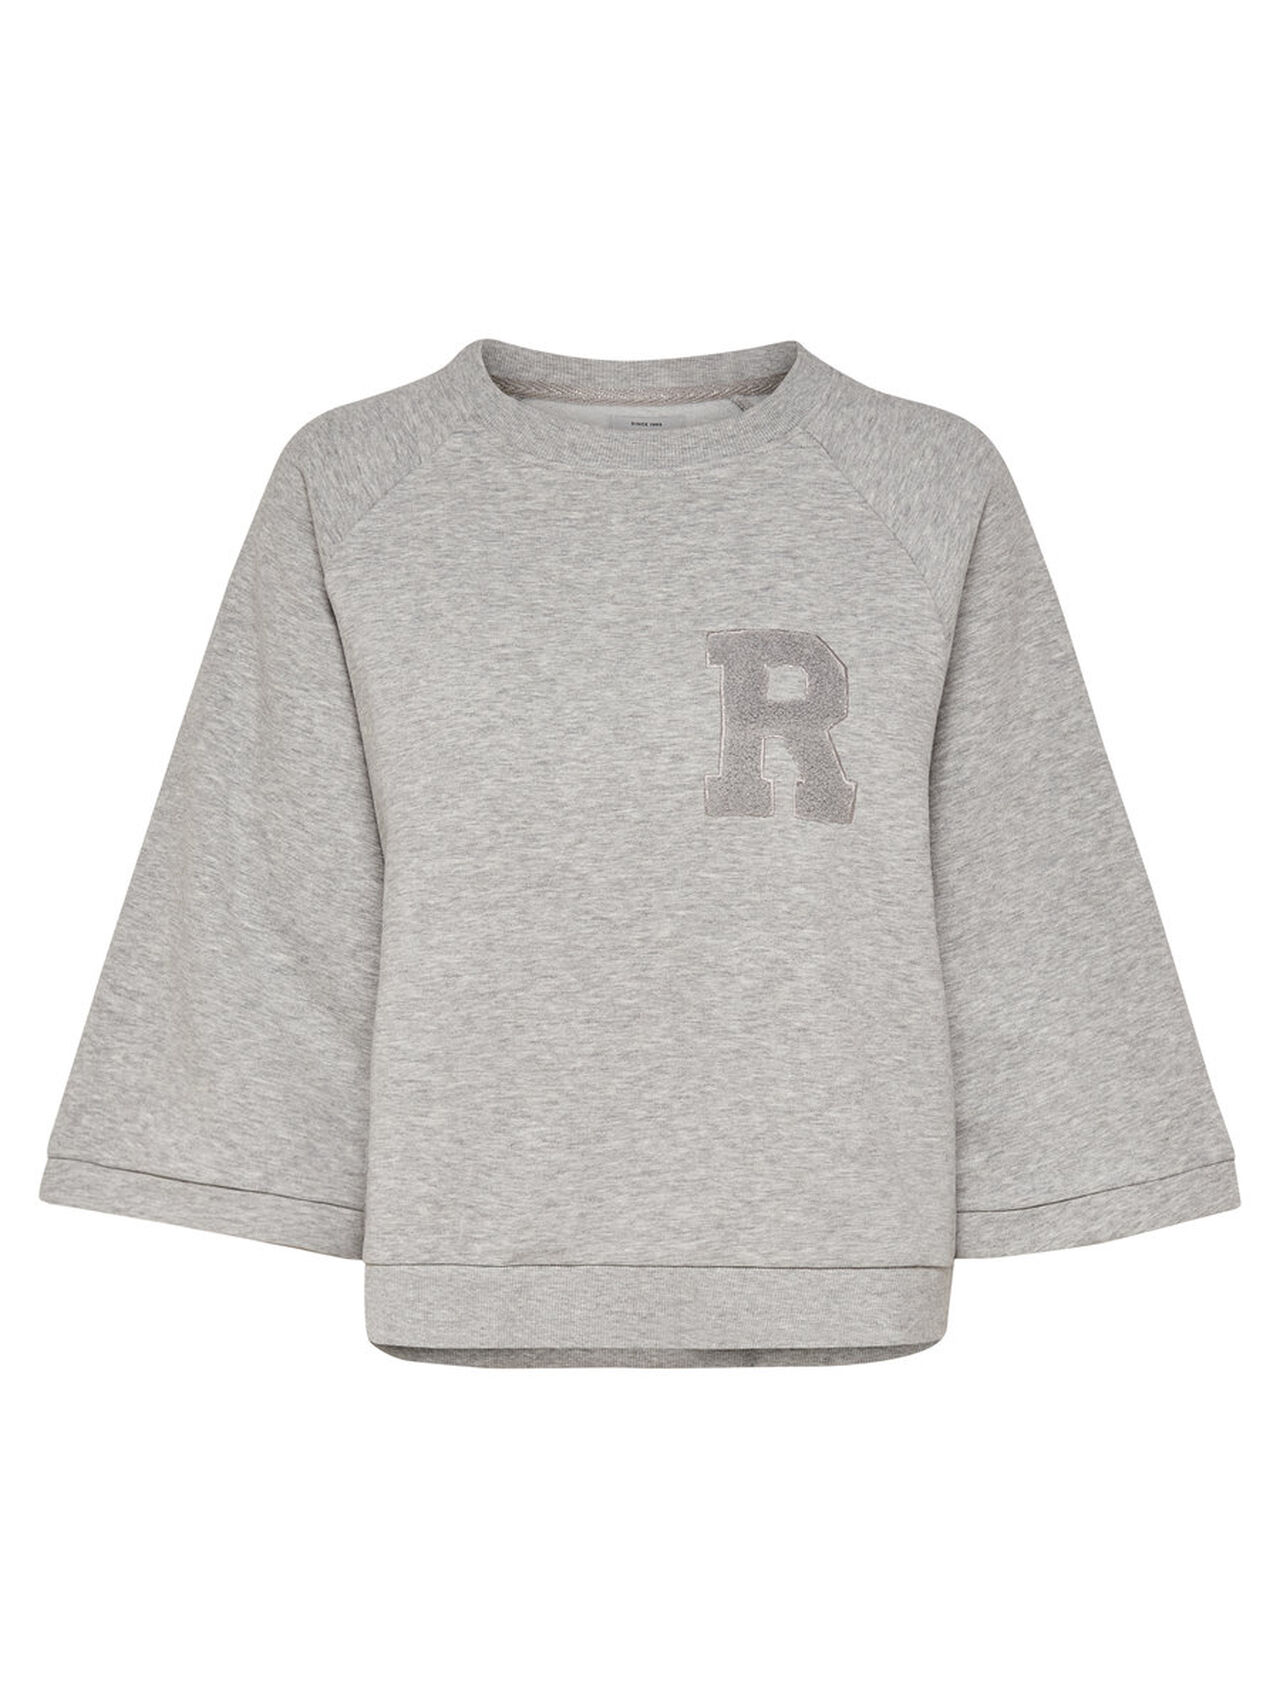 ONLY Sweat 3/4 Sleeved Top Women Grey